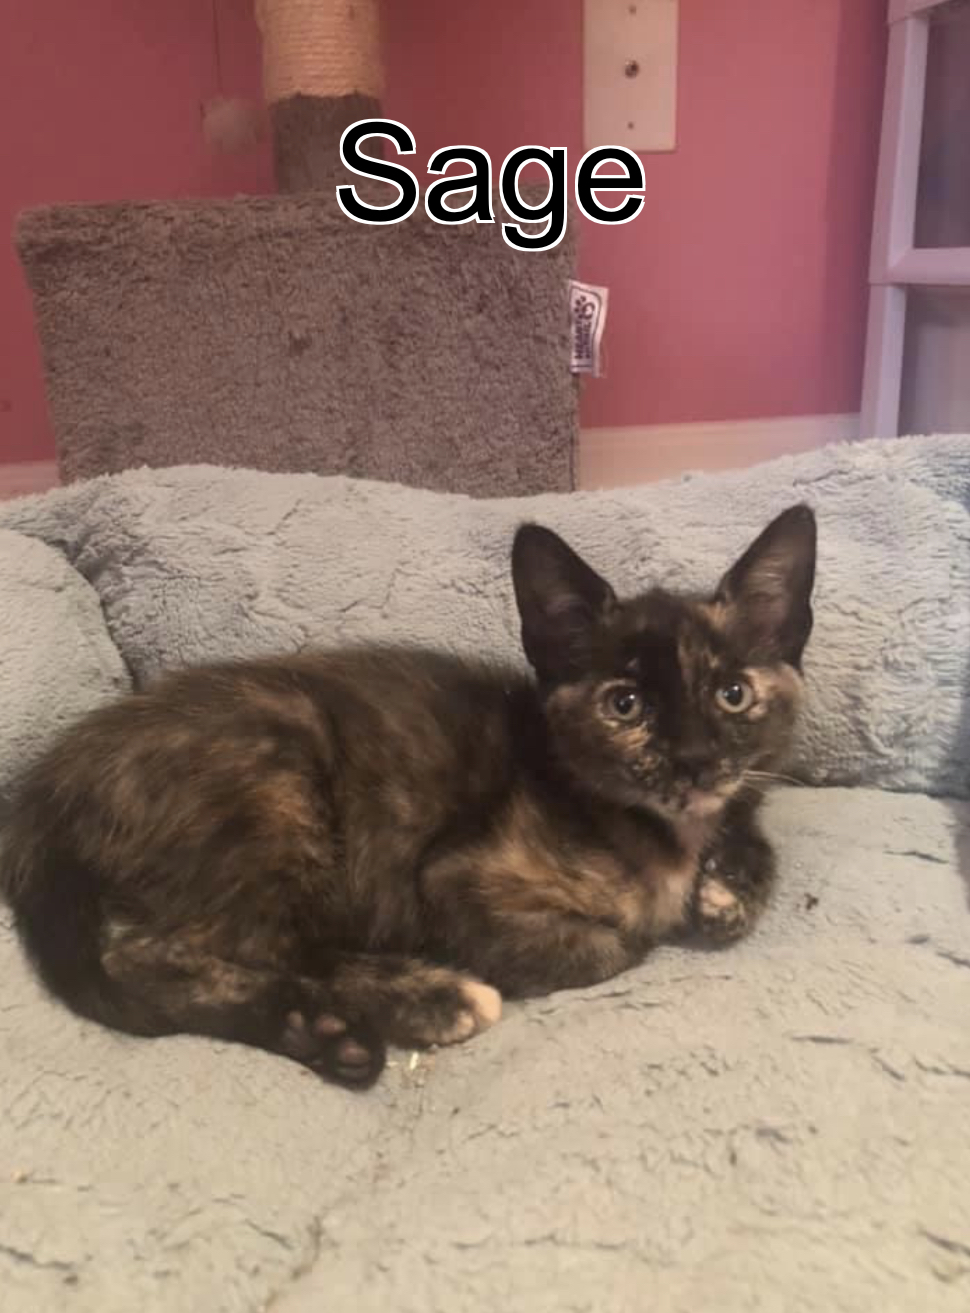 Three Paws Rescue - Sage